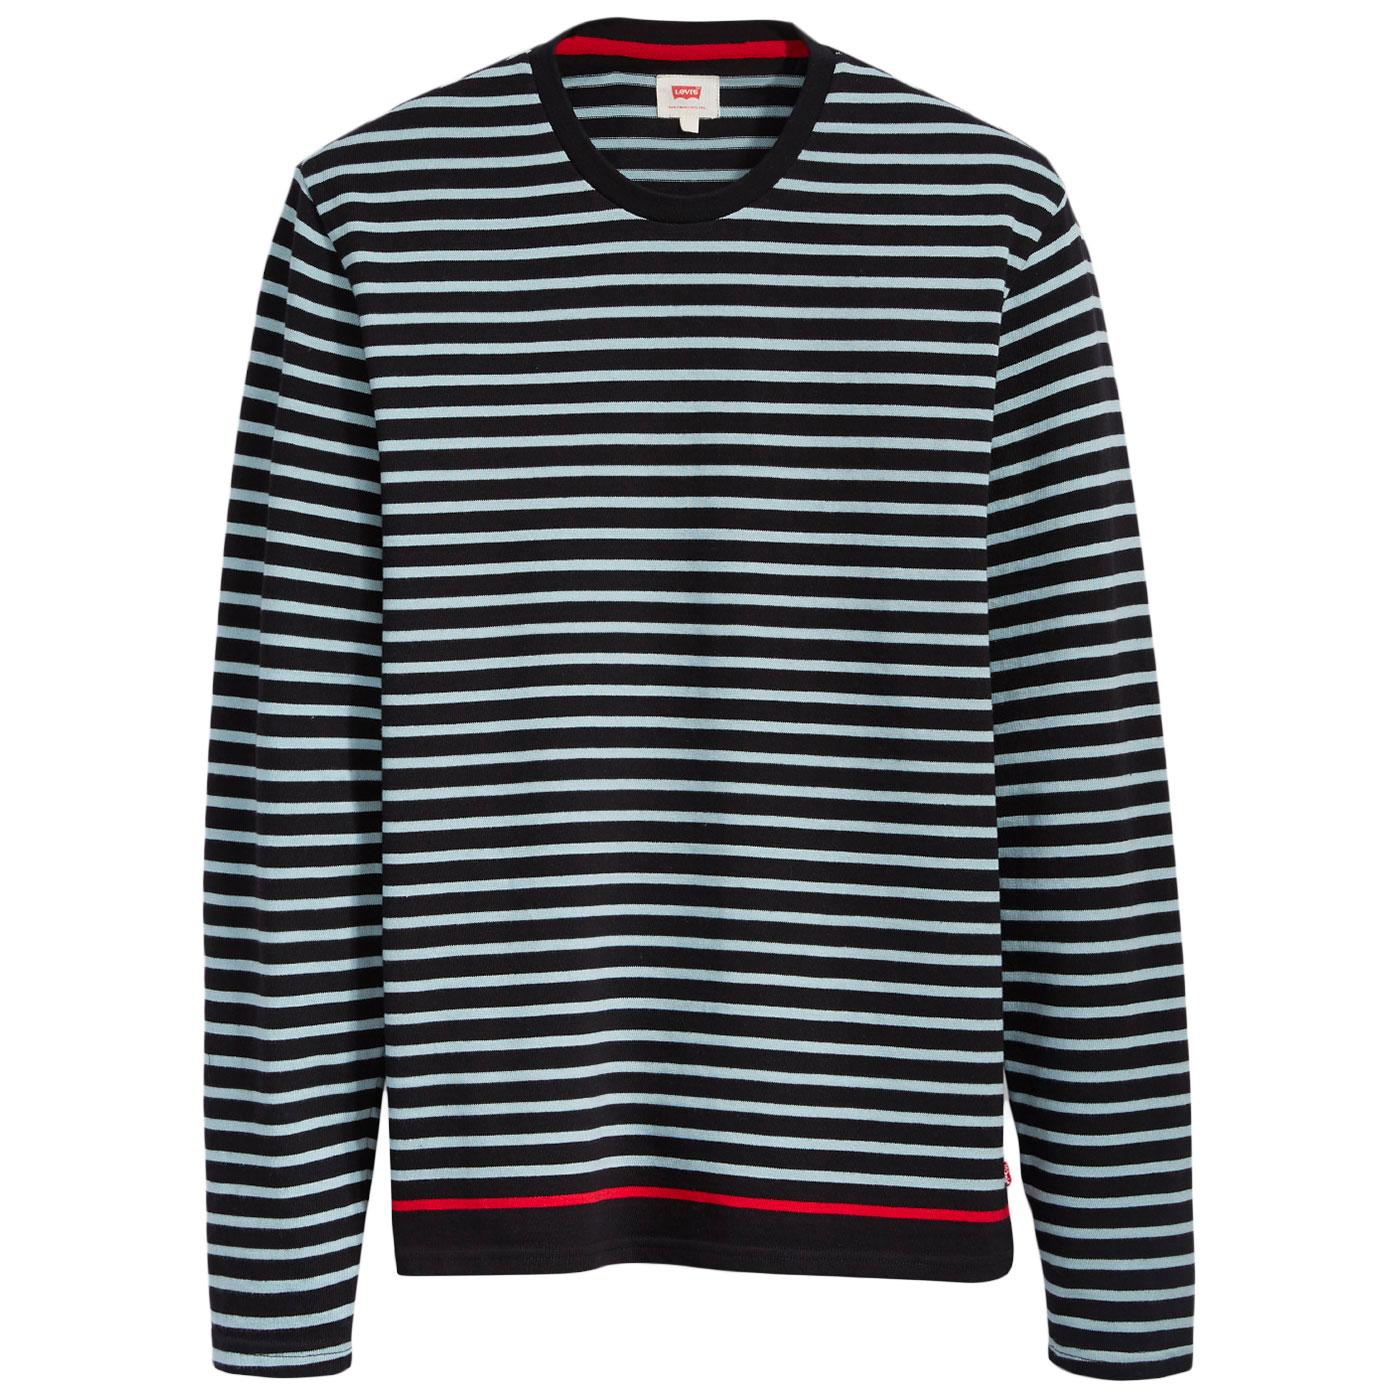 Mission LEVI'S Men's Retro Mod Breton Tee (Black)